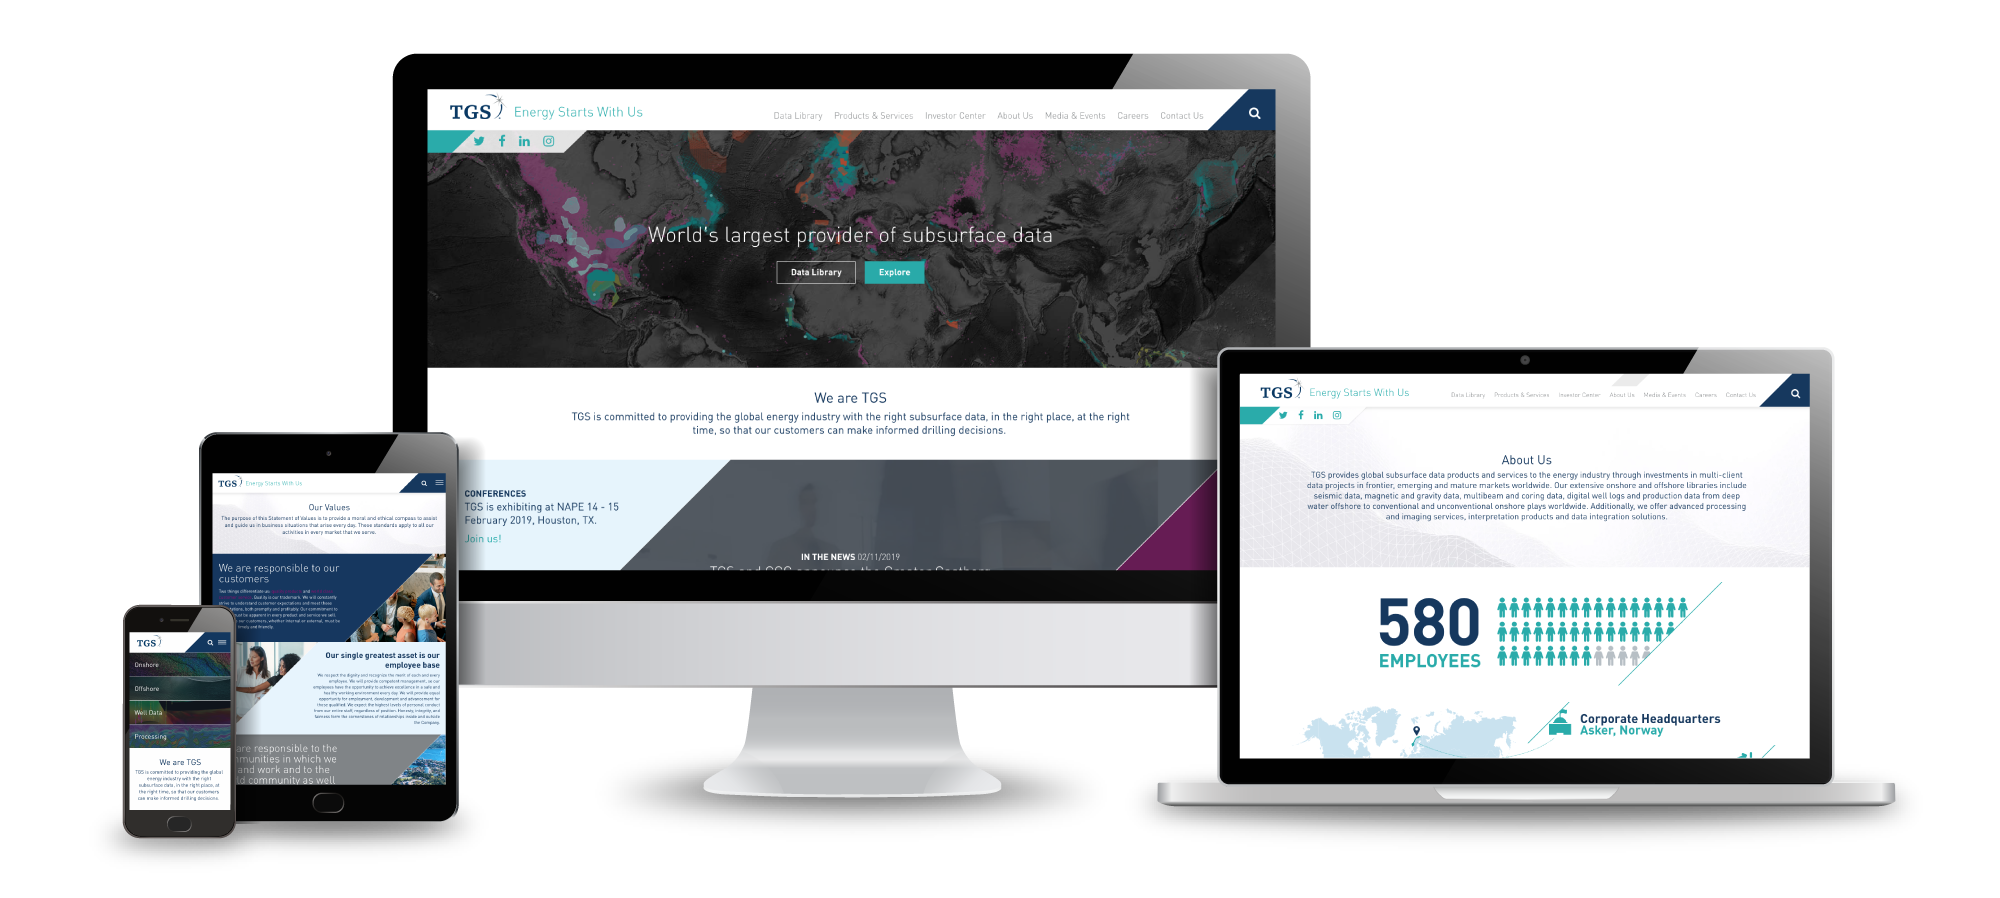 HexaGroup launches new TGS website